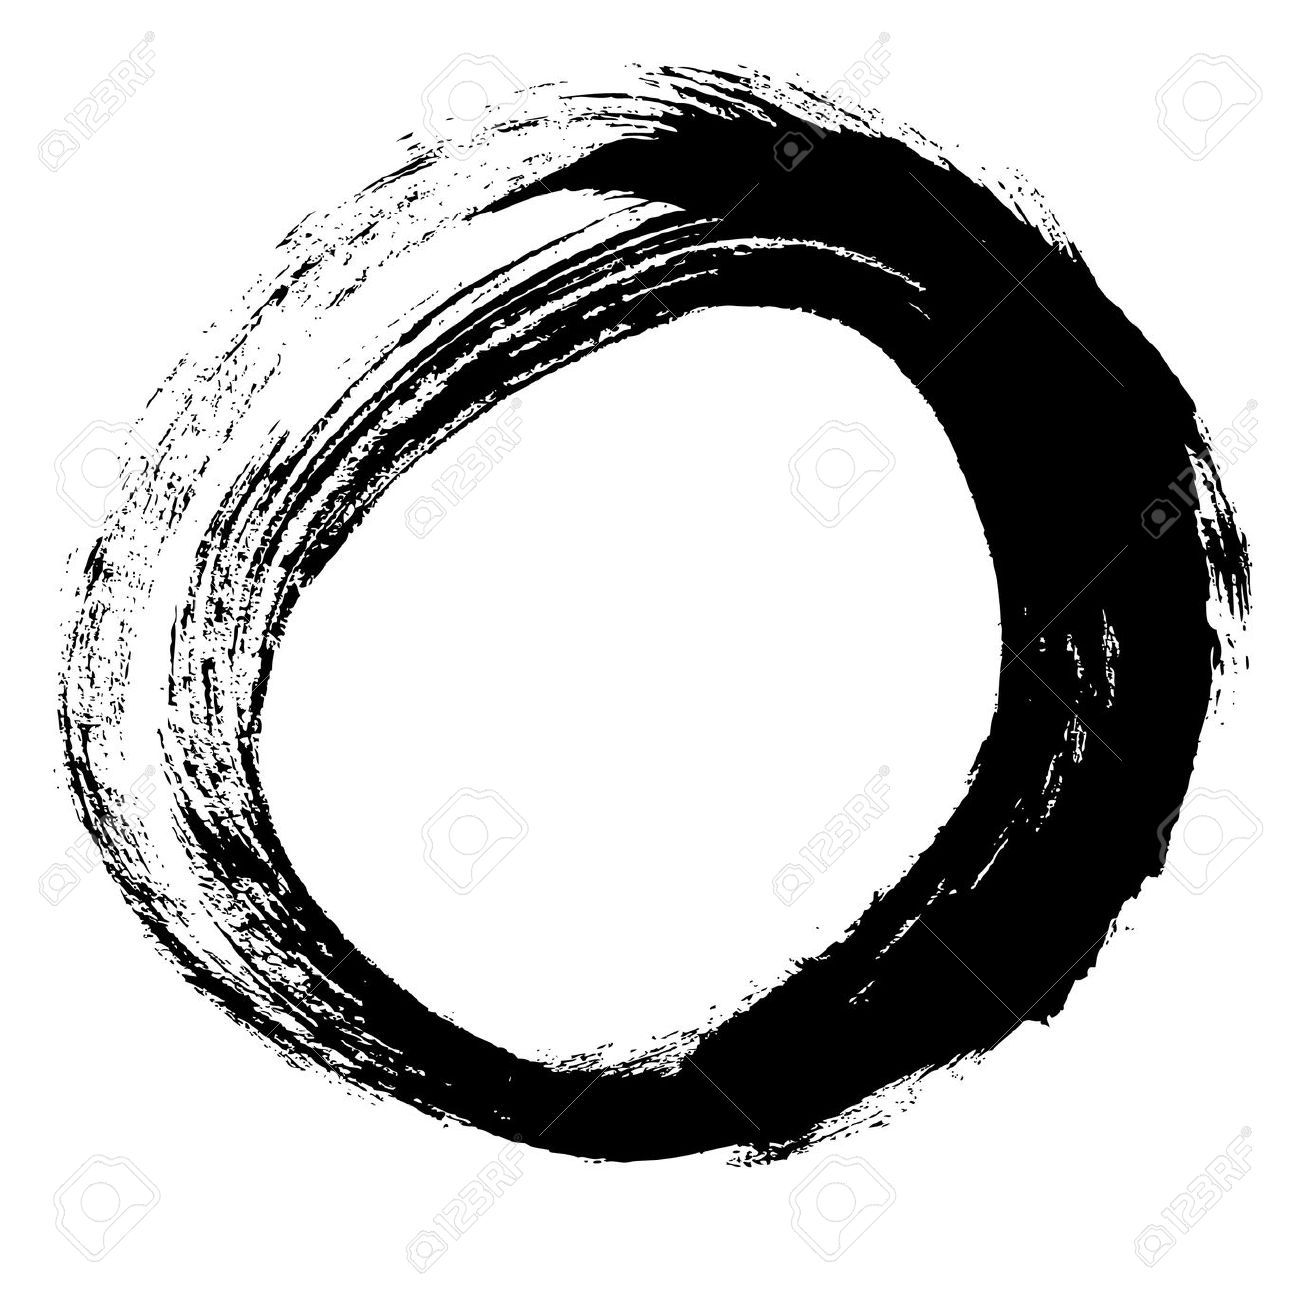 1300x1300 21525367 Black Brush Stroke In The Form Of A Circle Drawing